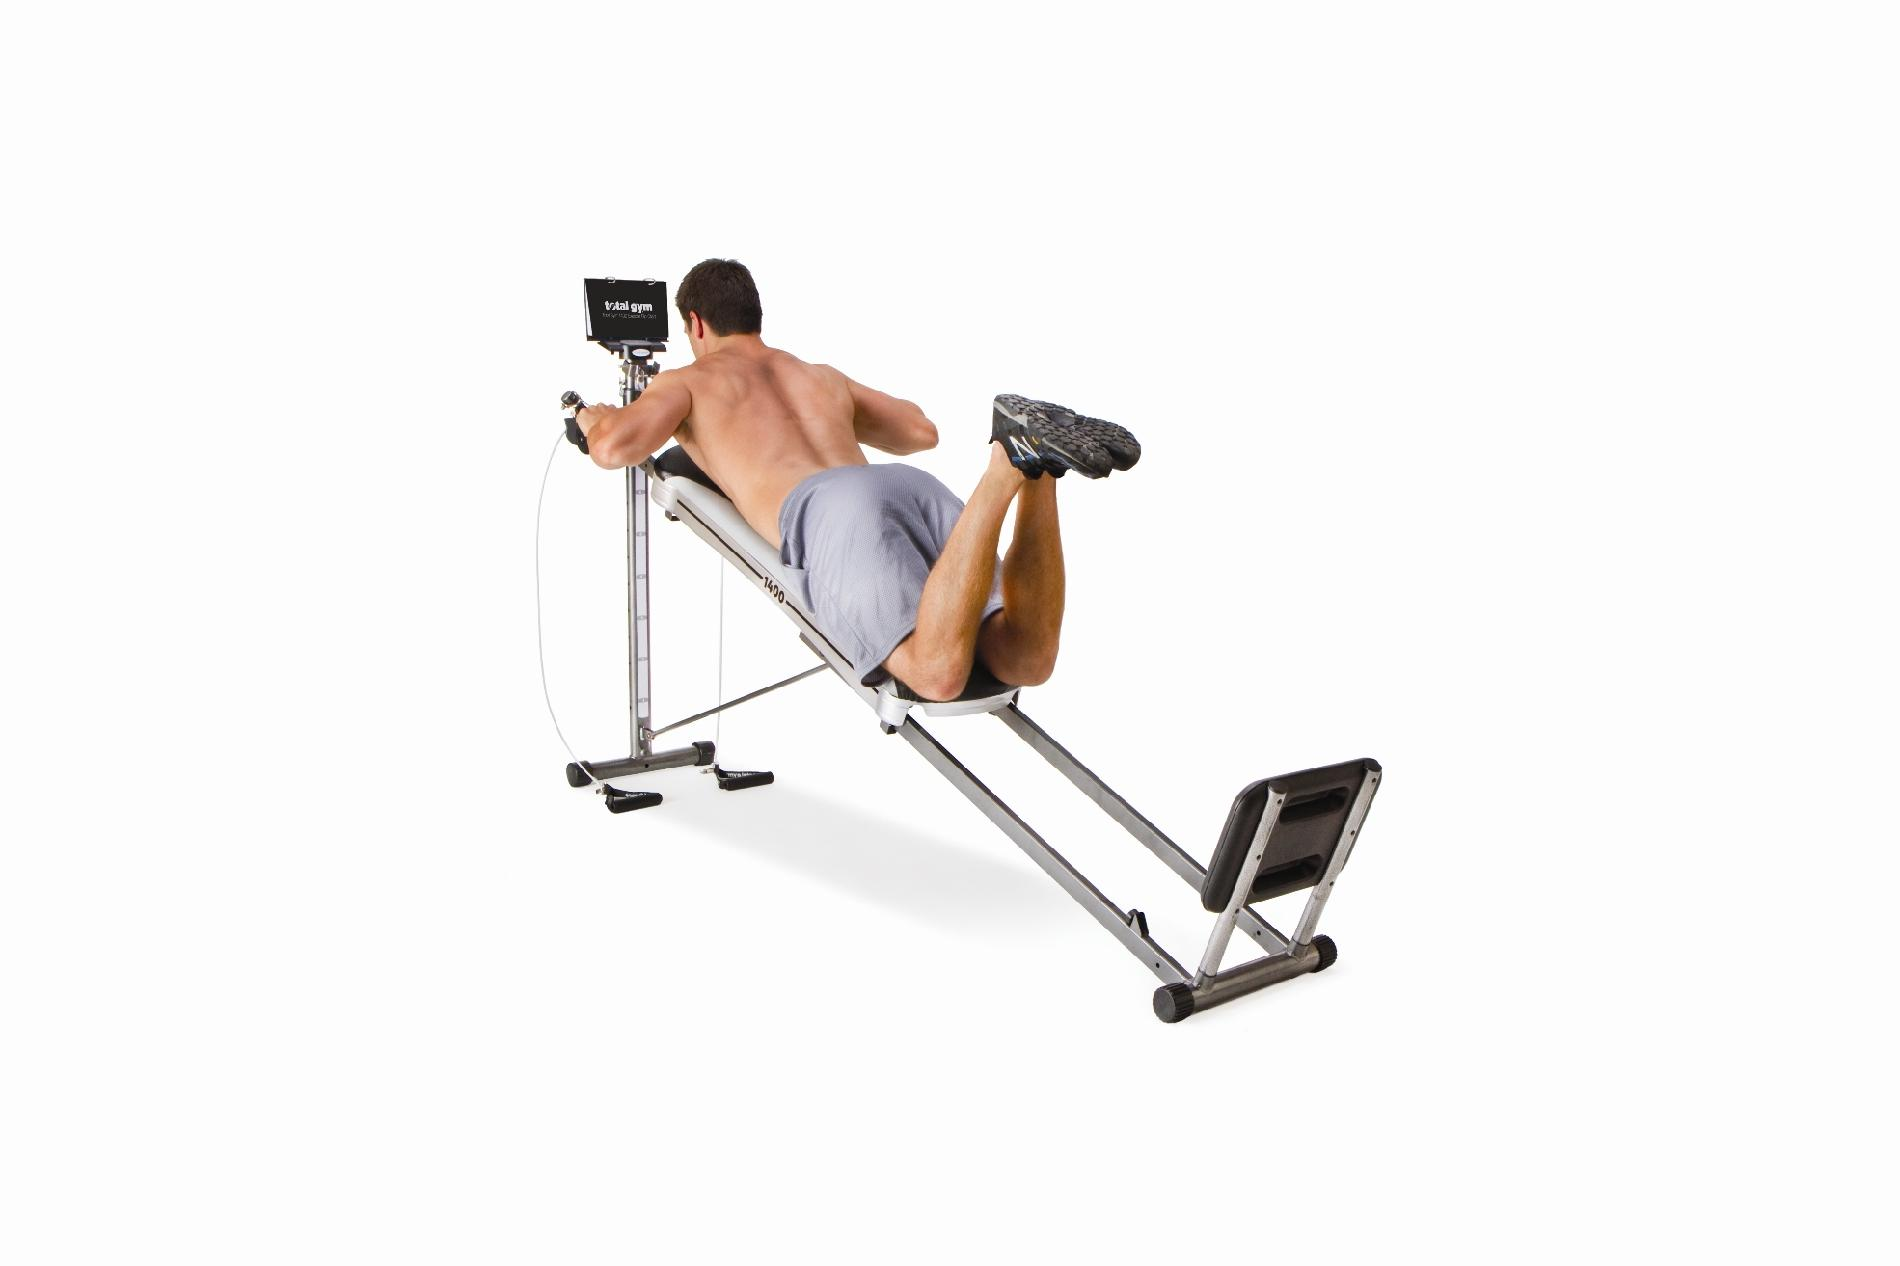 Total Gym Total Gym 1400 Exercise System for Toning and Strengthening